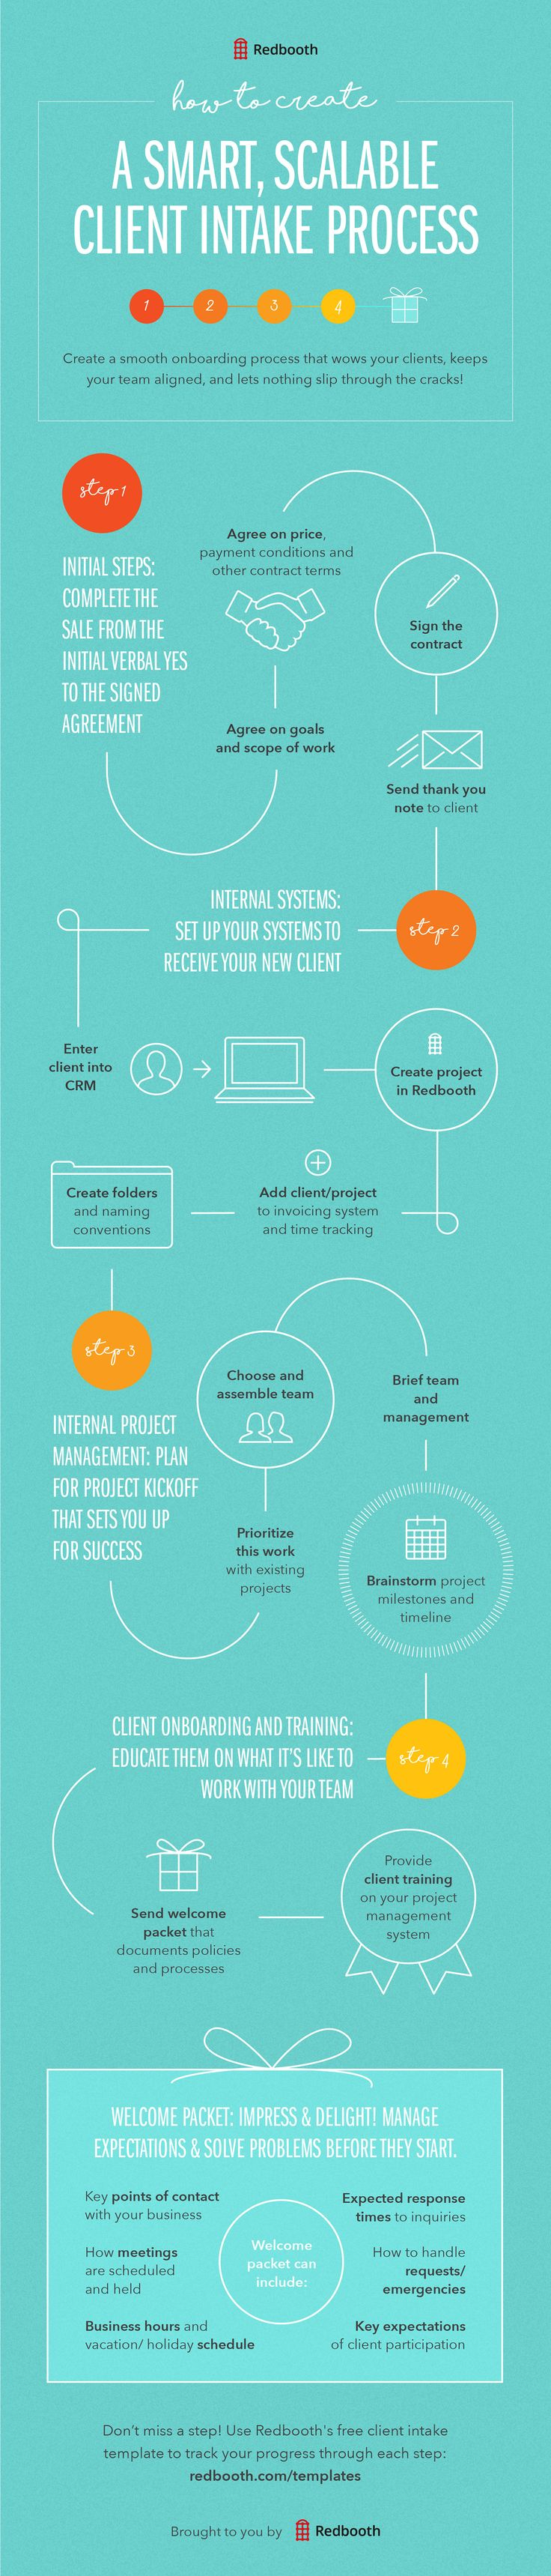 Make all of your new clients feel welcome and get them up to speed fast! This client intake #infographic walks you through the onboarding process from start to finish.